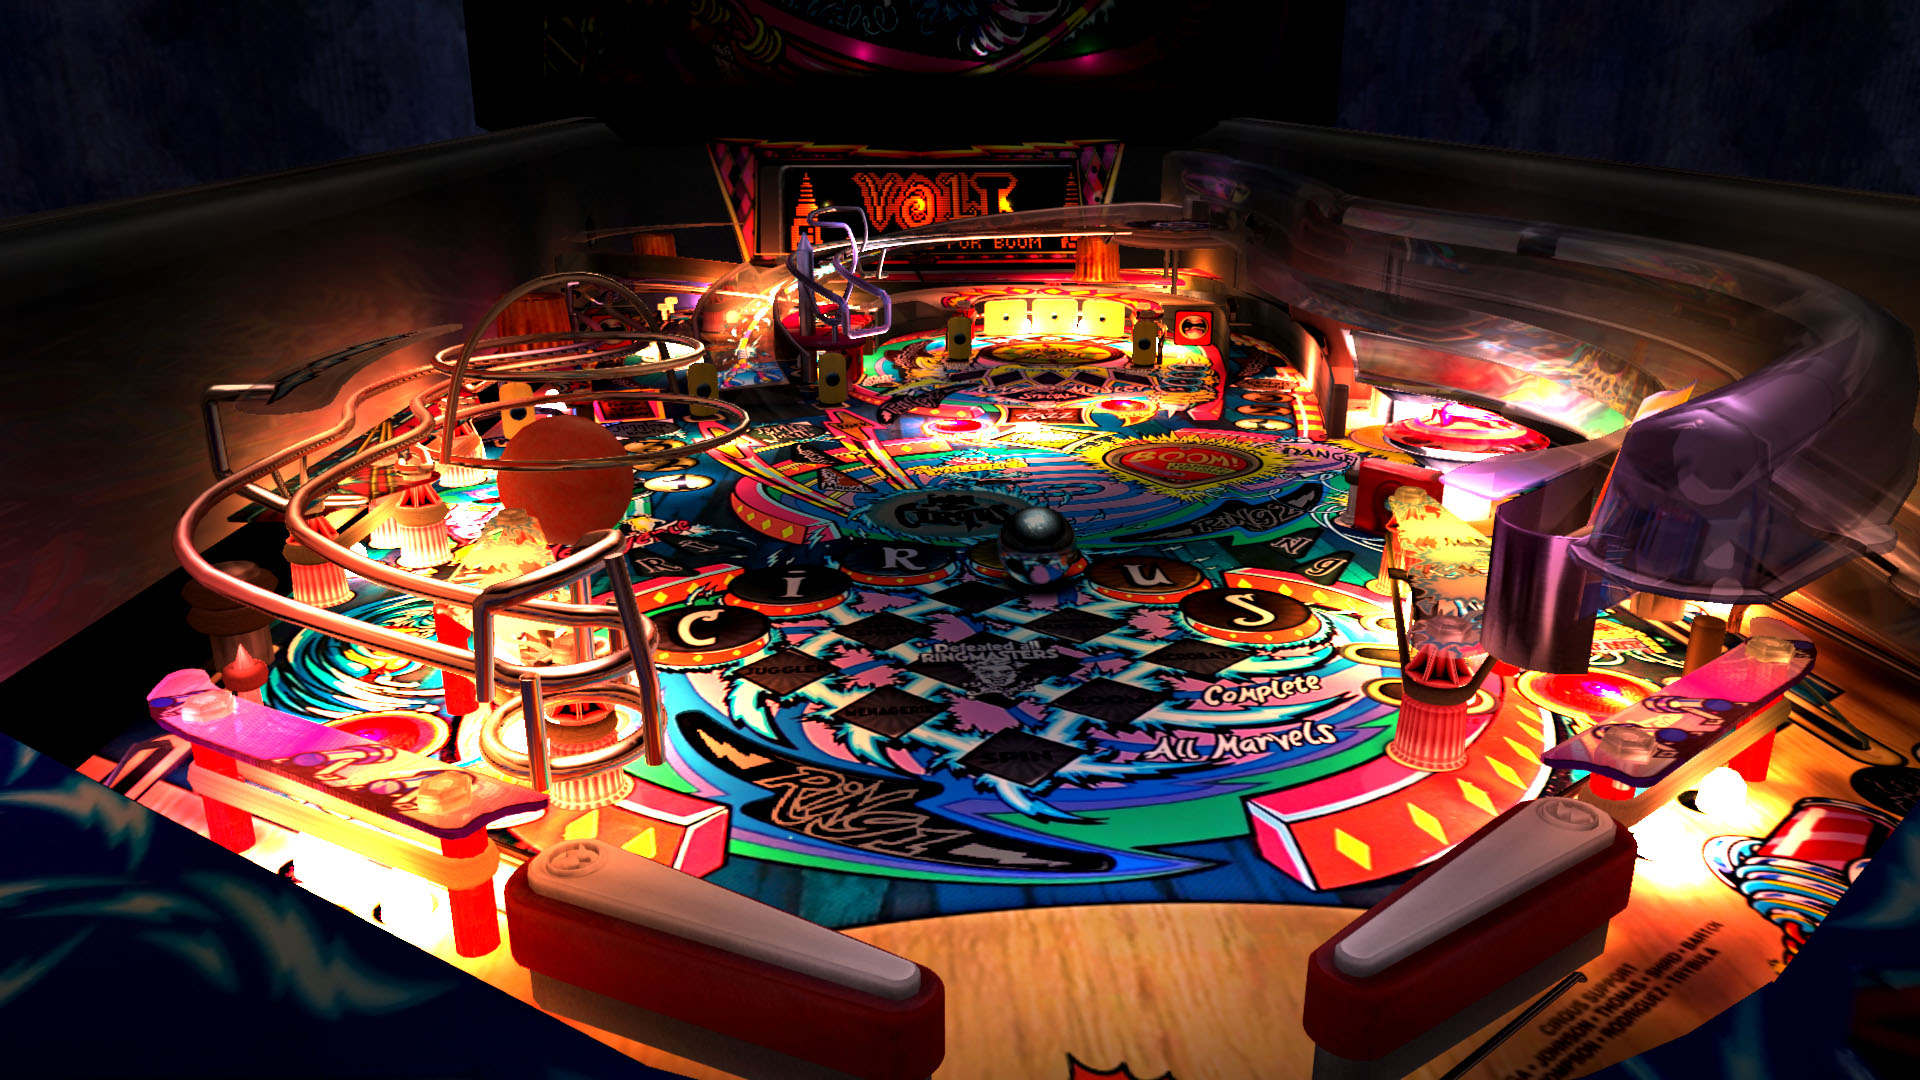 Quotes Wallpaper Hd 1 Pinball Arcade Hd Wallpapers Backgrounds Wallpaper Abyss